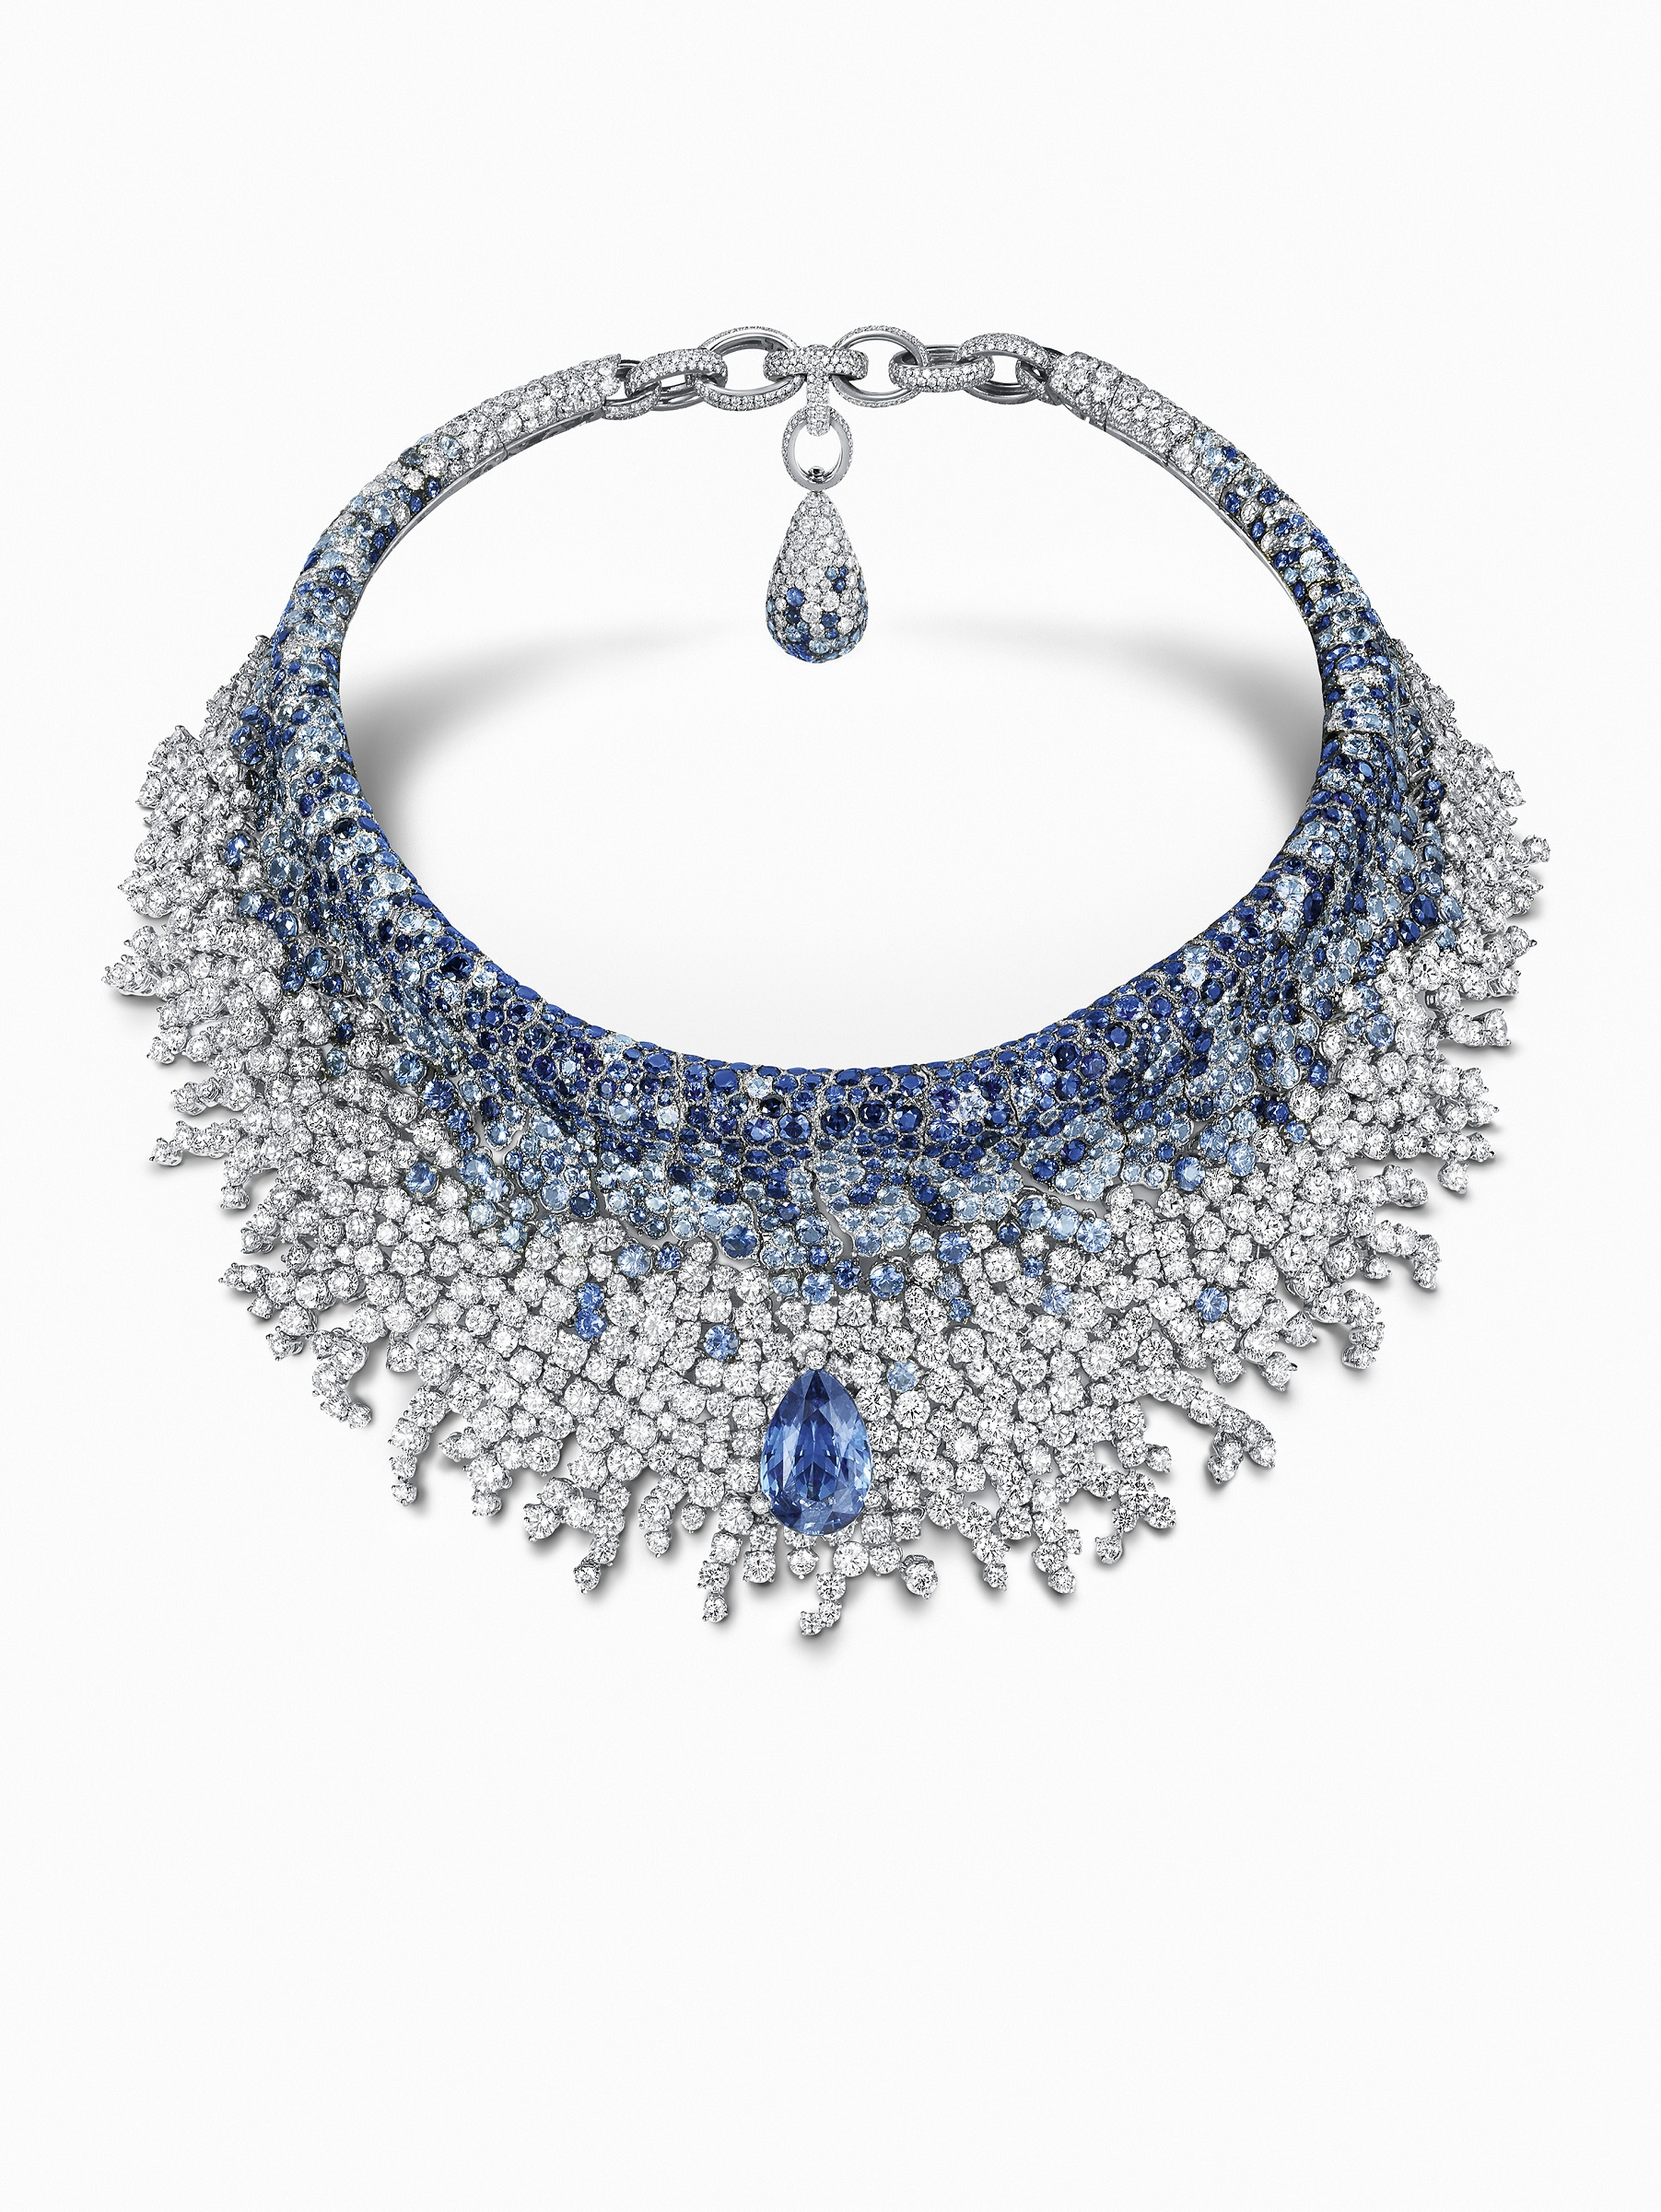 de Grisogono Collier Diamond and Sapphire Necklace high jewelry necklace sapphire diamonds